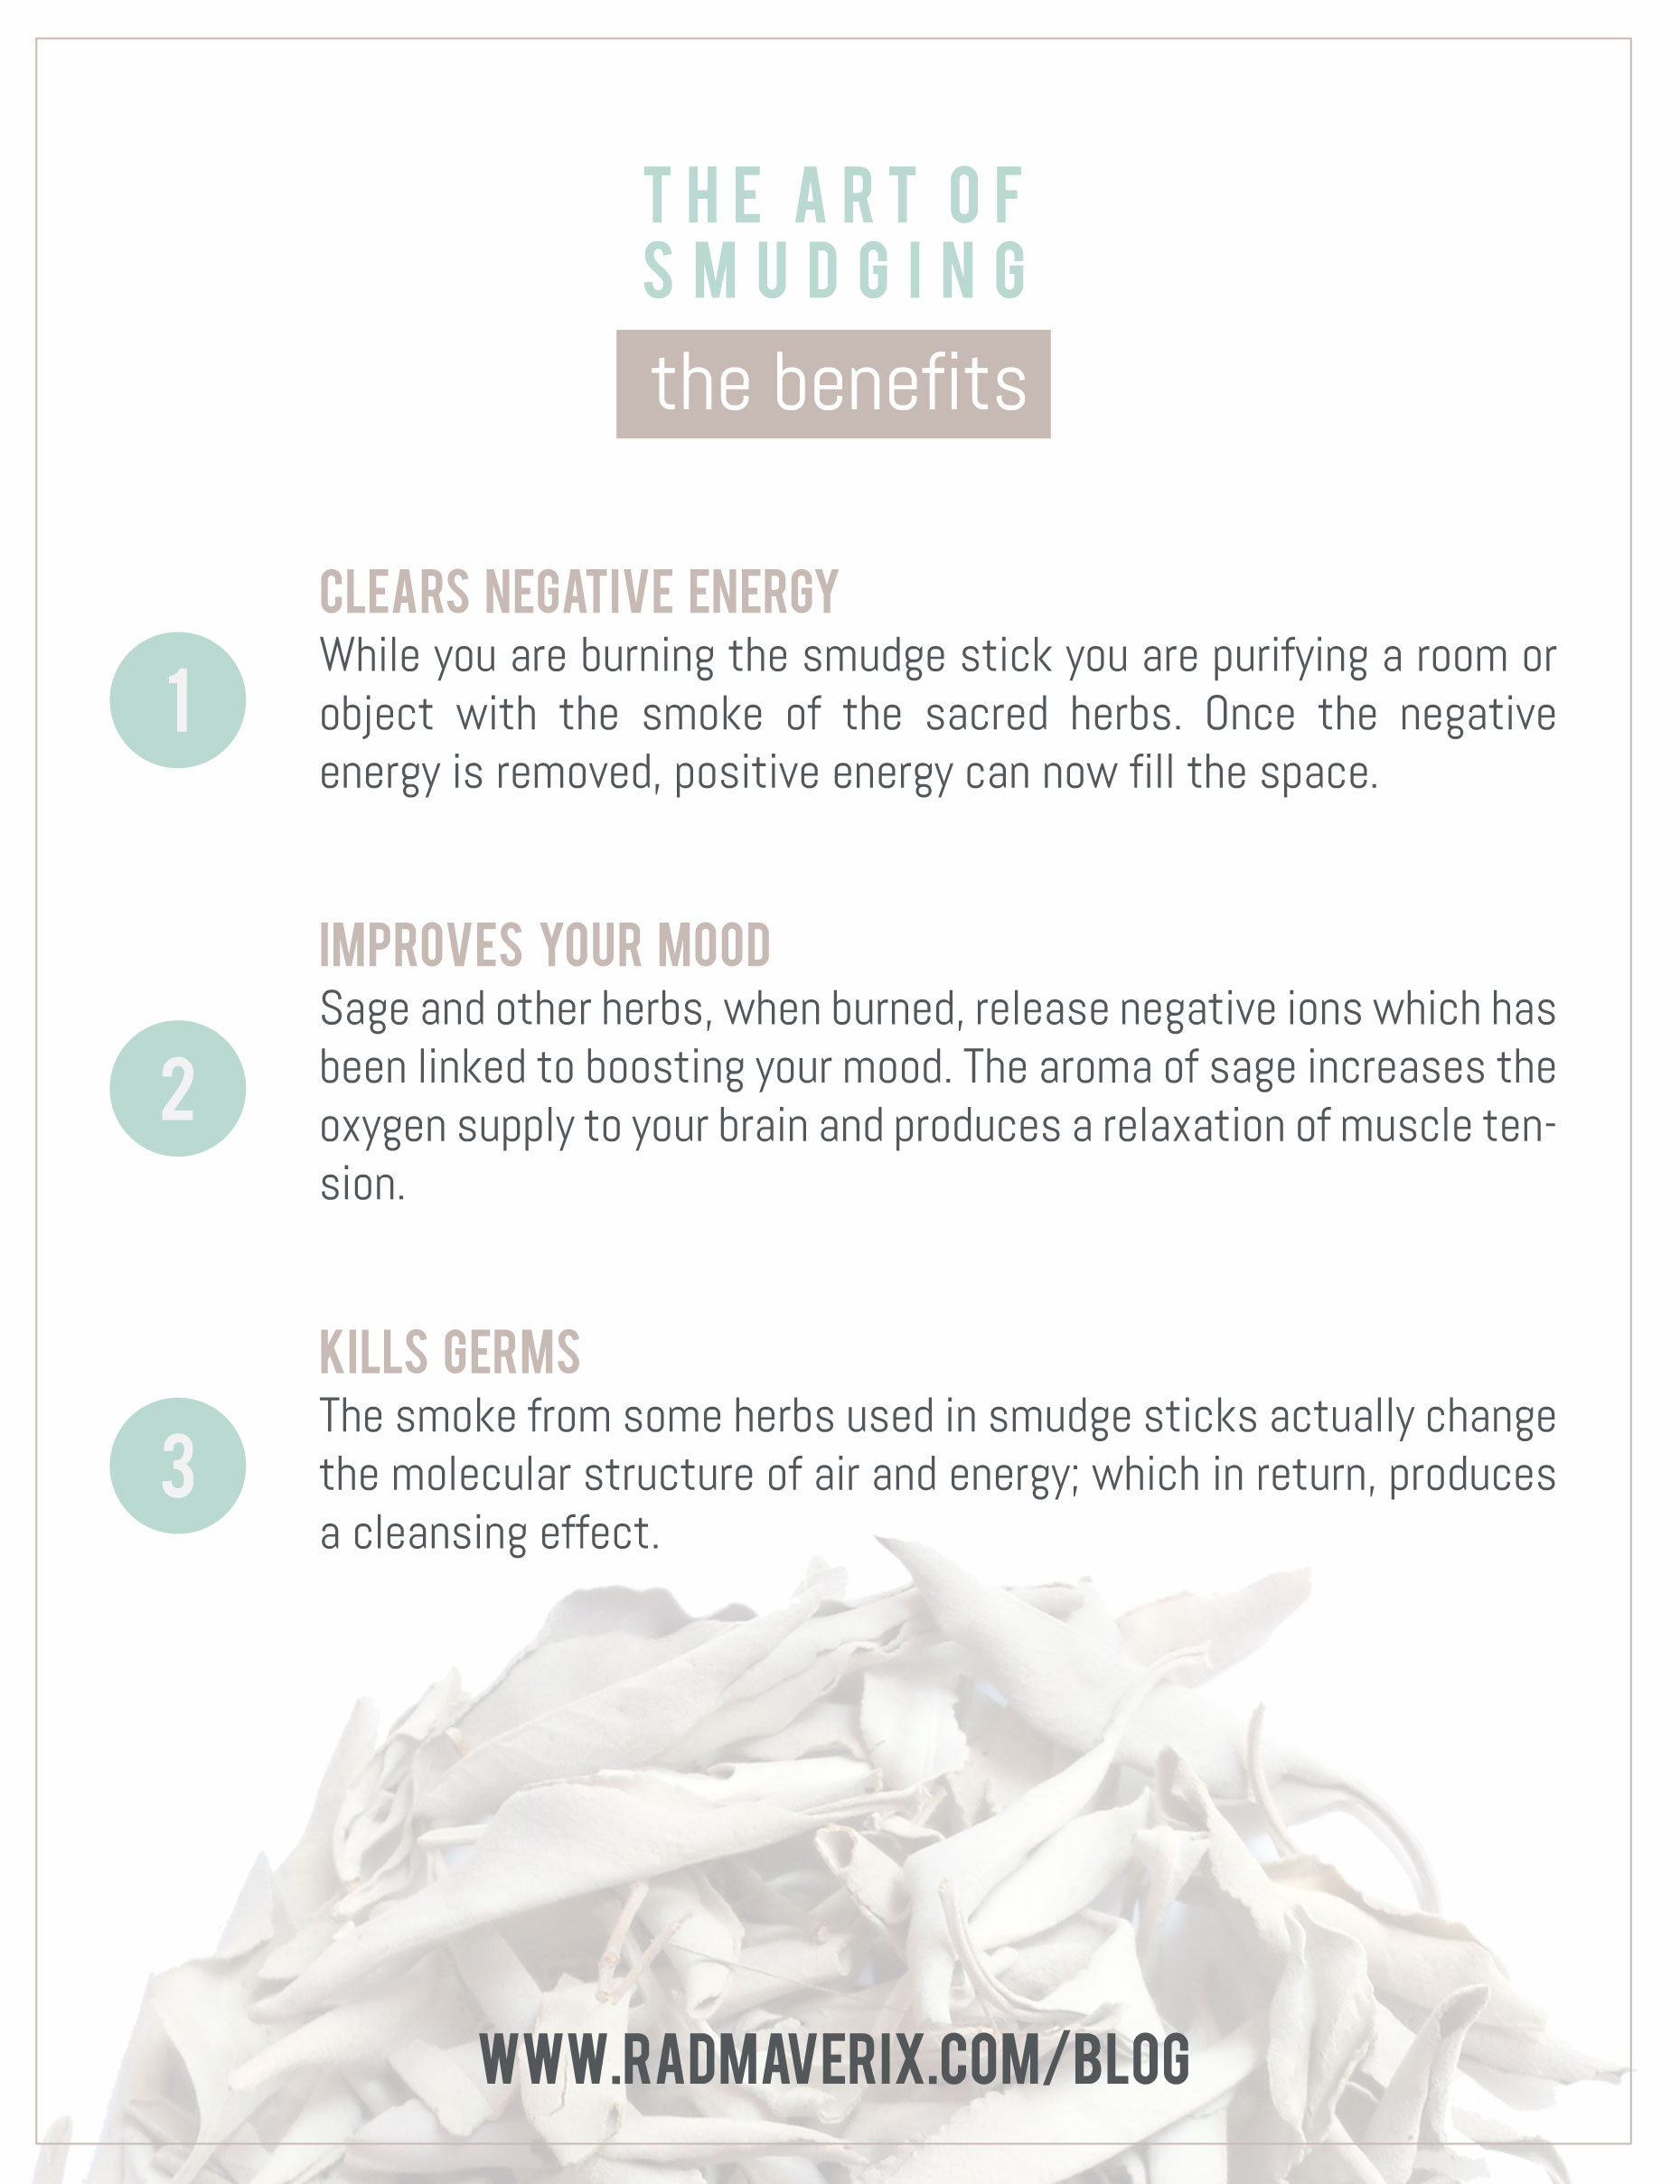 The Art of Smudging 101: The Benefits